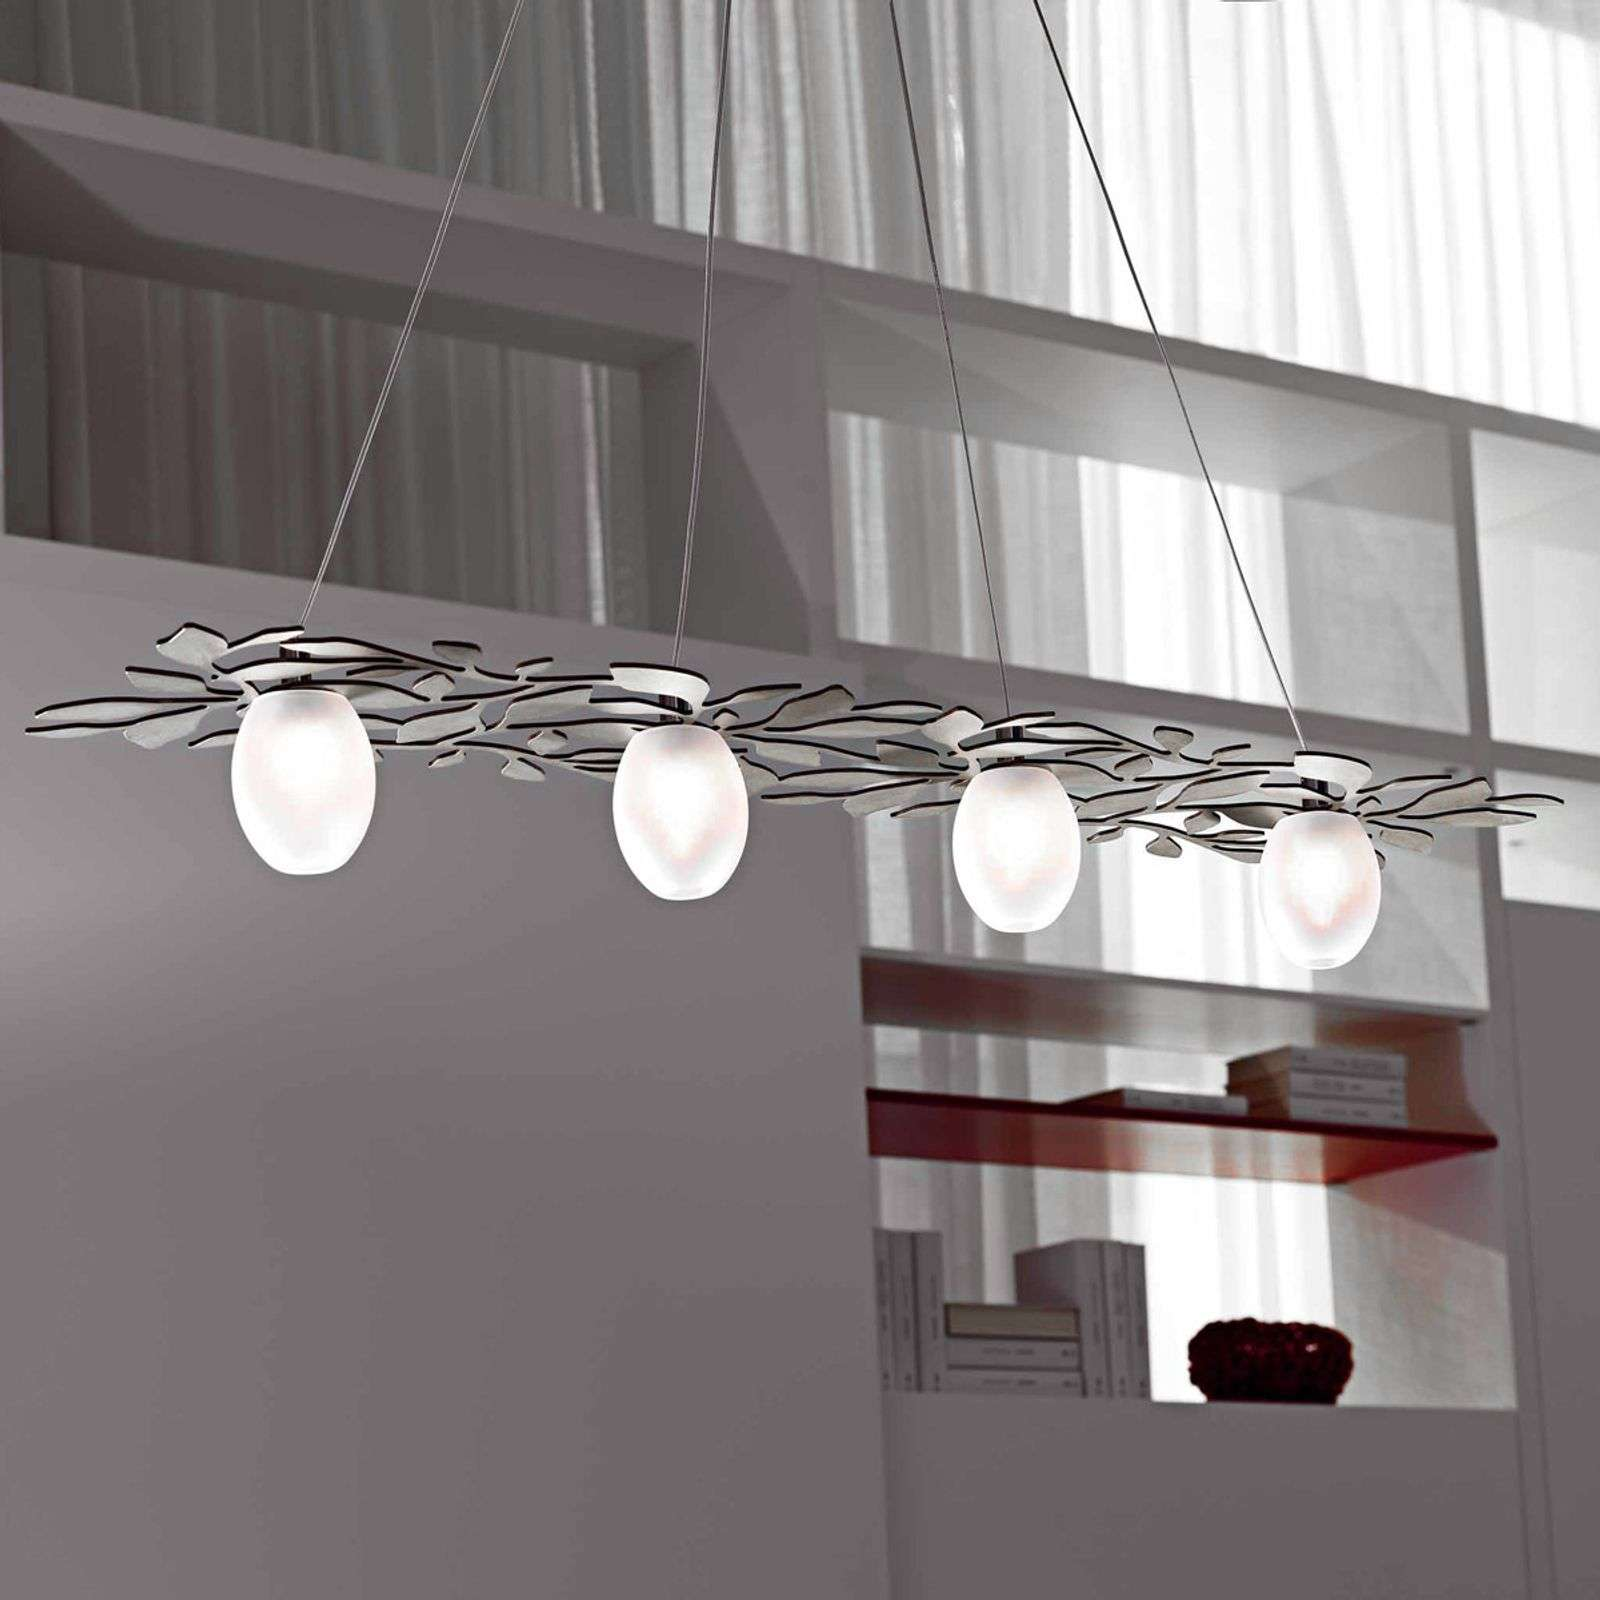 Suspension nature Arbos à 4 lampes nickel poli